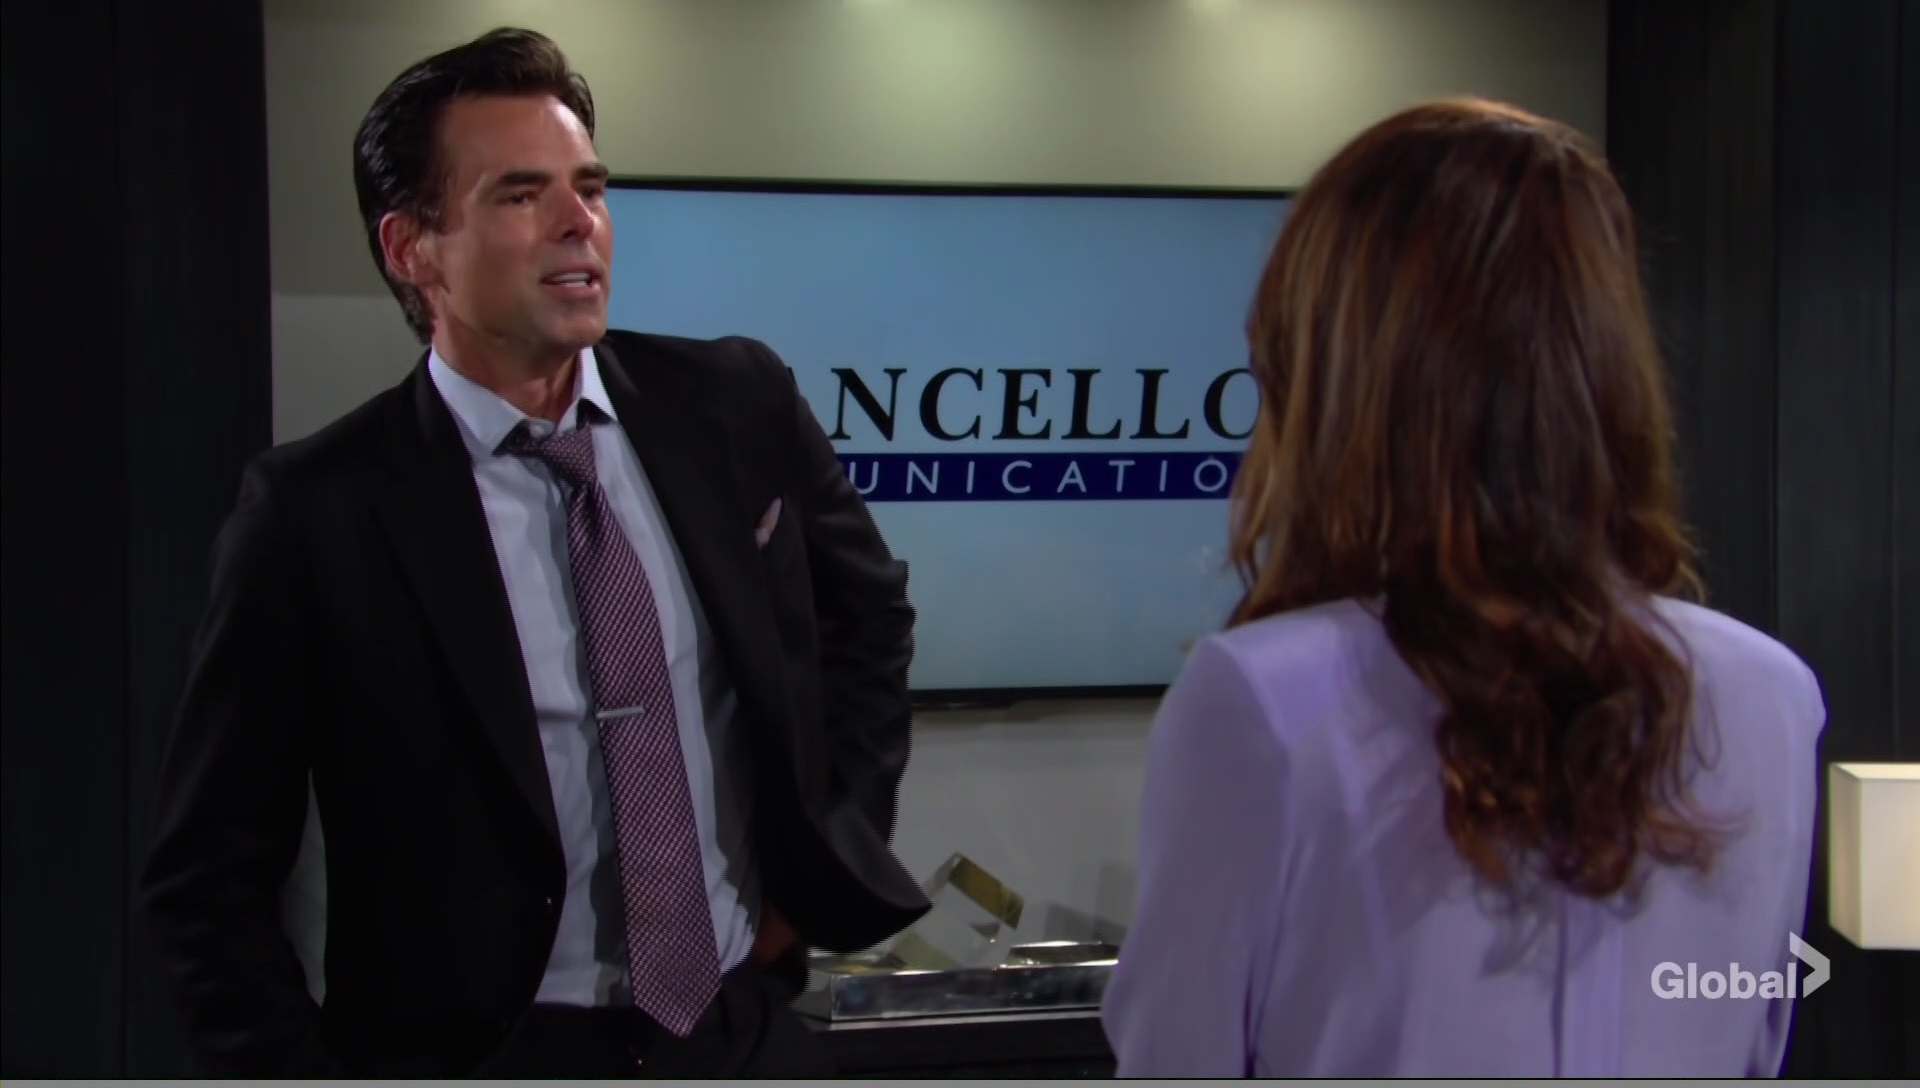 billy wants ash story young restless